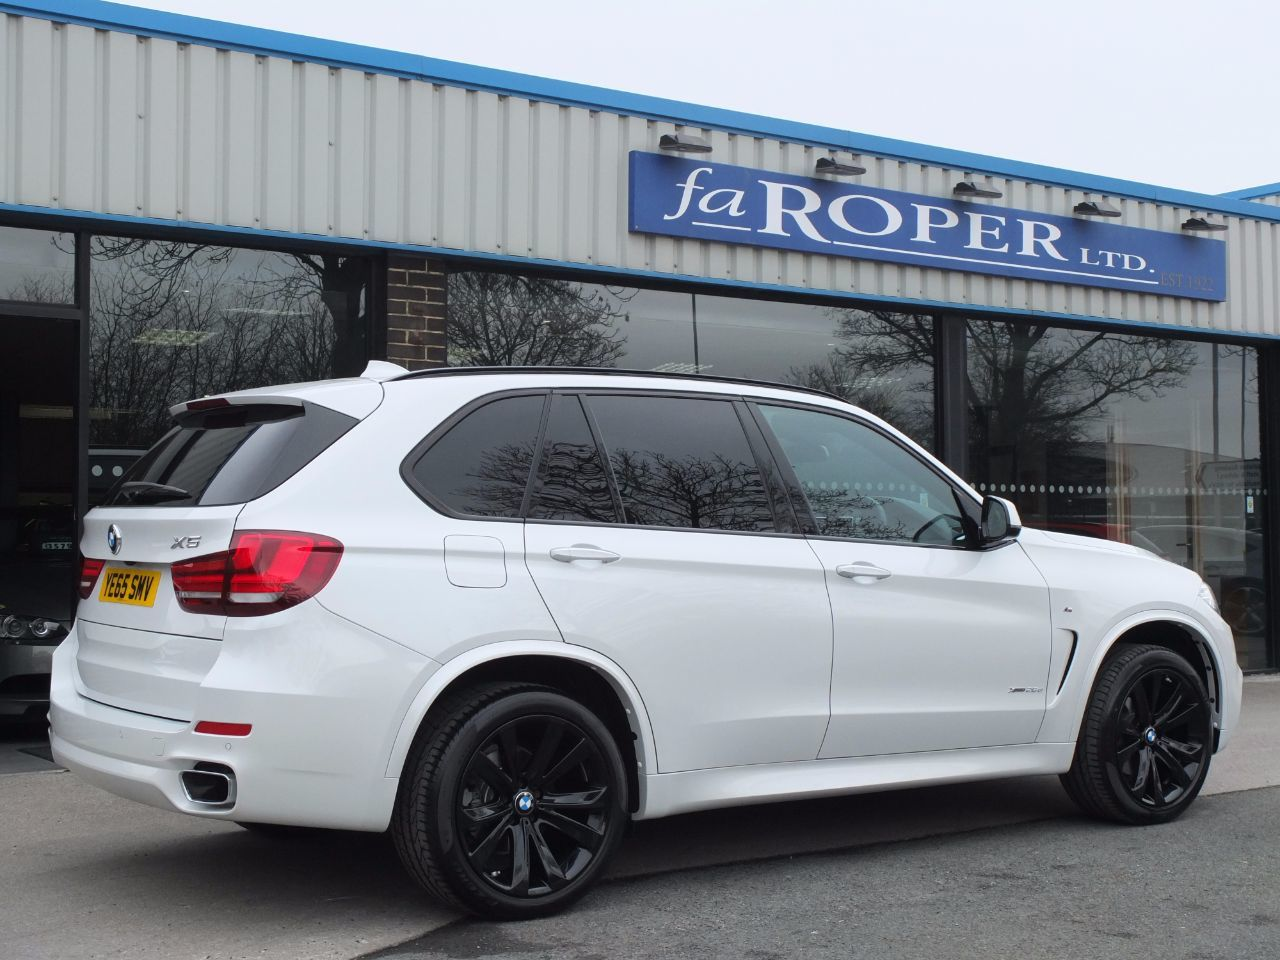 BMW X5 2.0 xDrive25d M Sport 231ps Auto Estate Diesel Mineral White Metallic